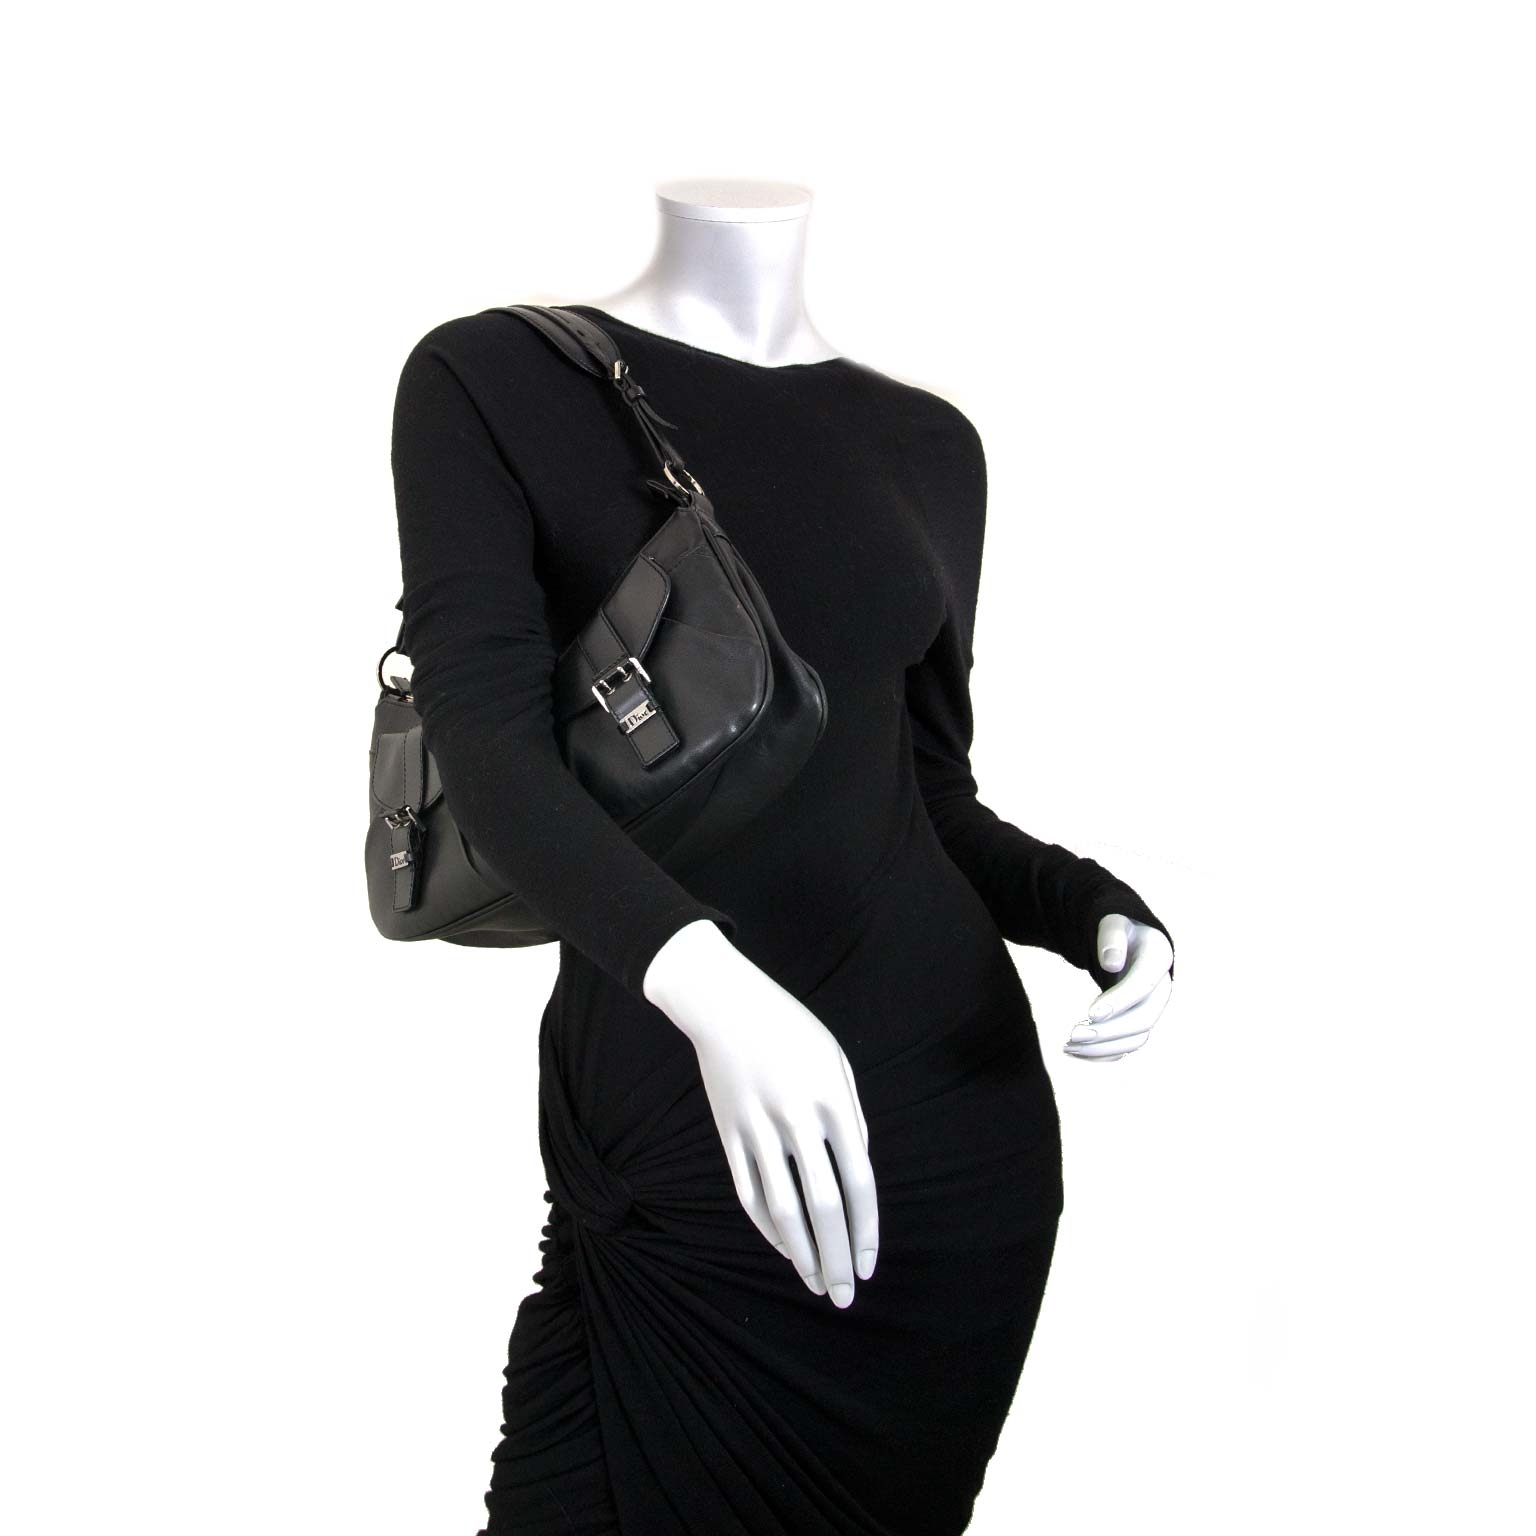 dior black leather top handle bag now for sale at labellov vintage fashion webshop belgium